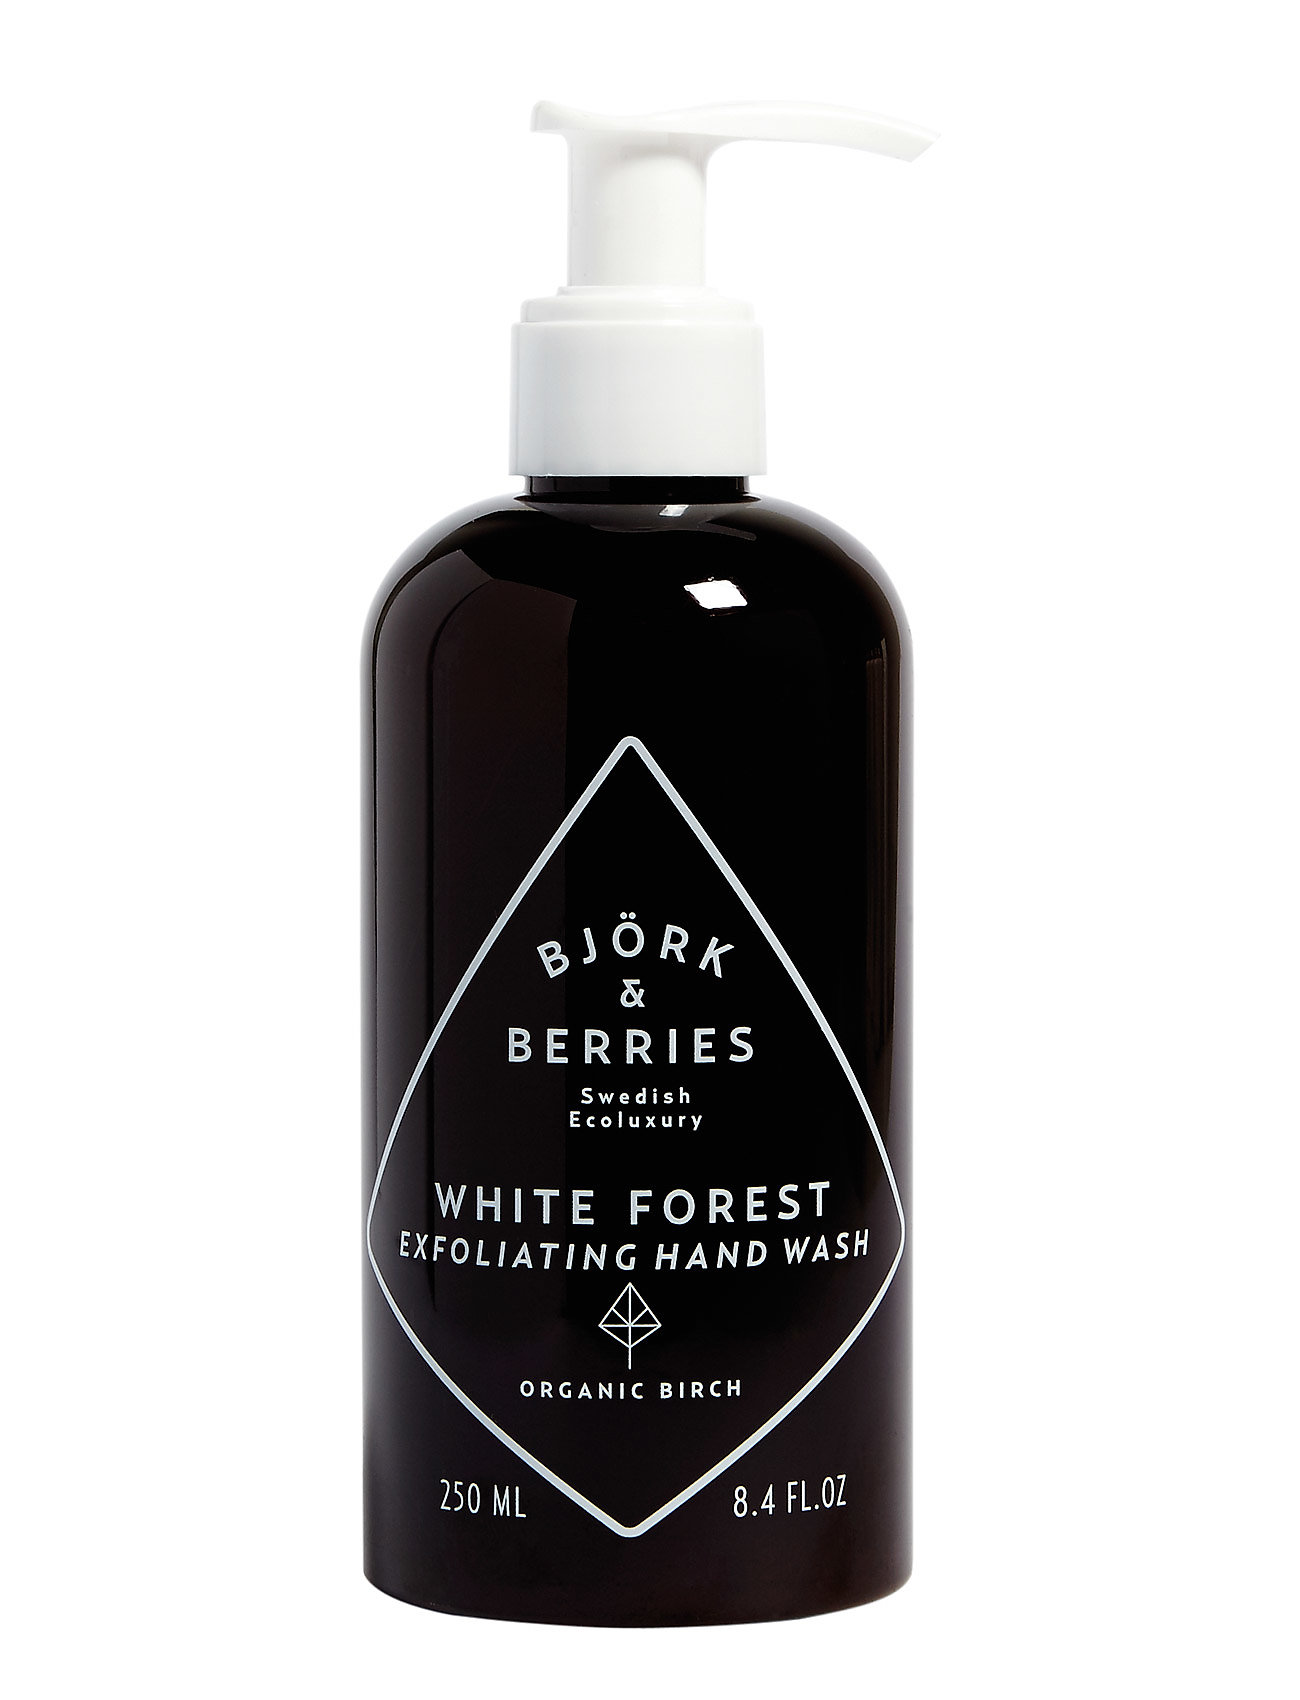 Björk & Berries White Forest Exfoliating Hand Wash - CLEAR